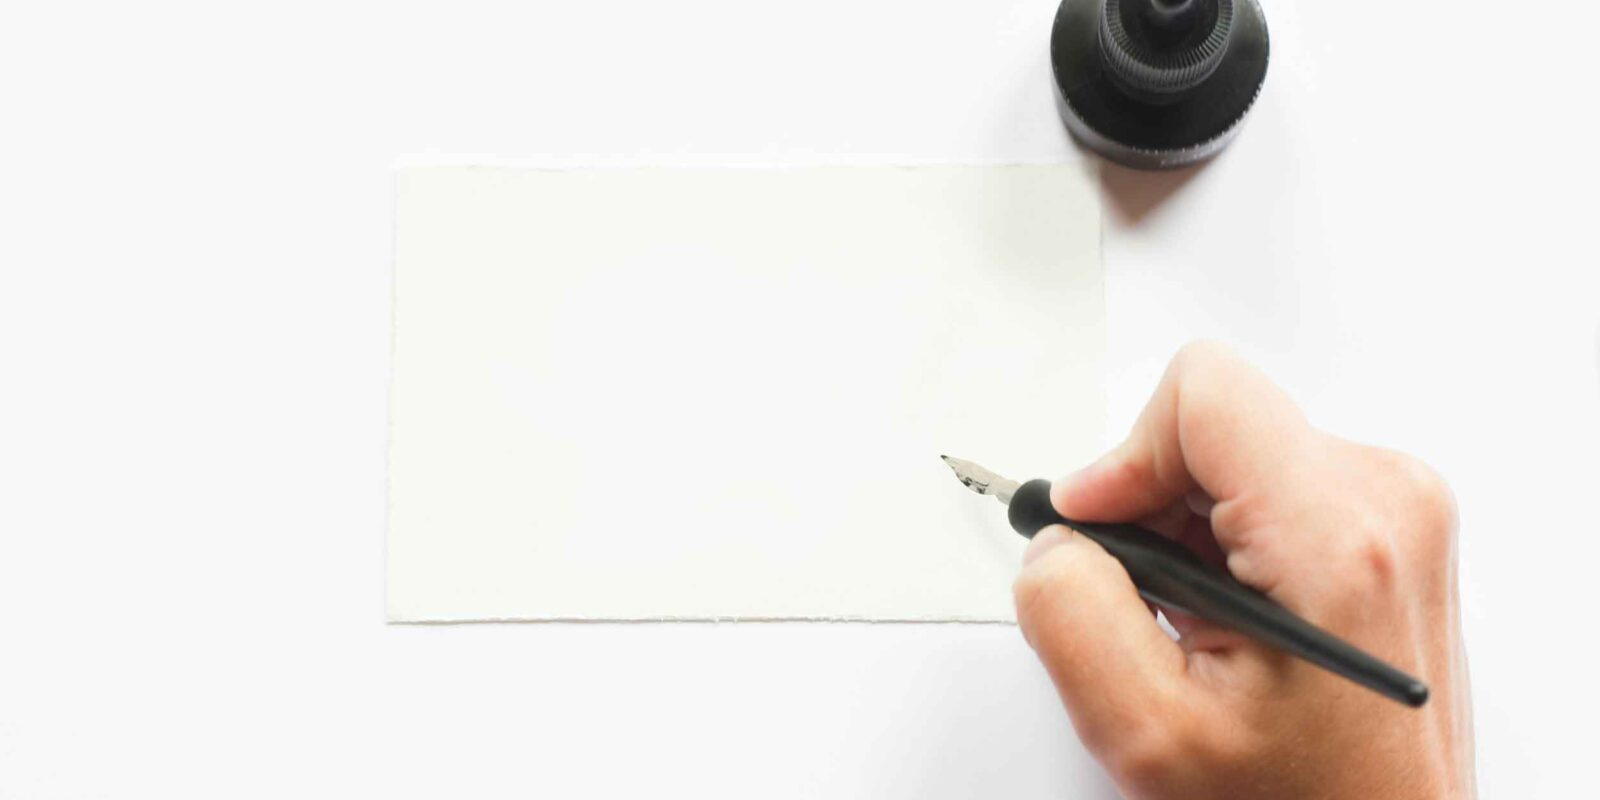 Hand holding pen over a blank sheet of paper